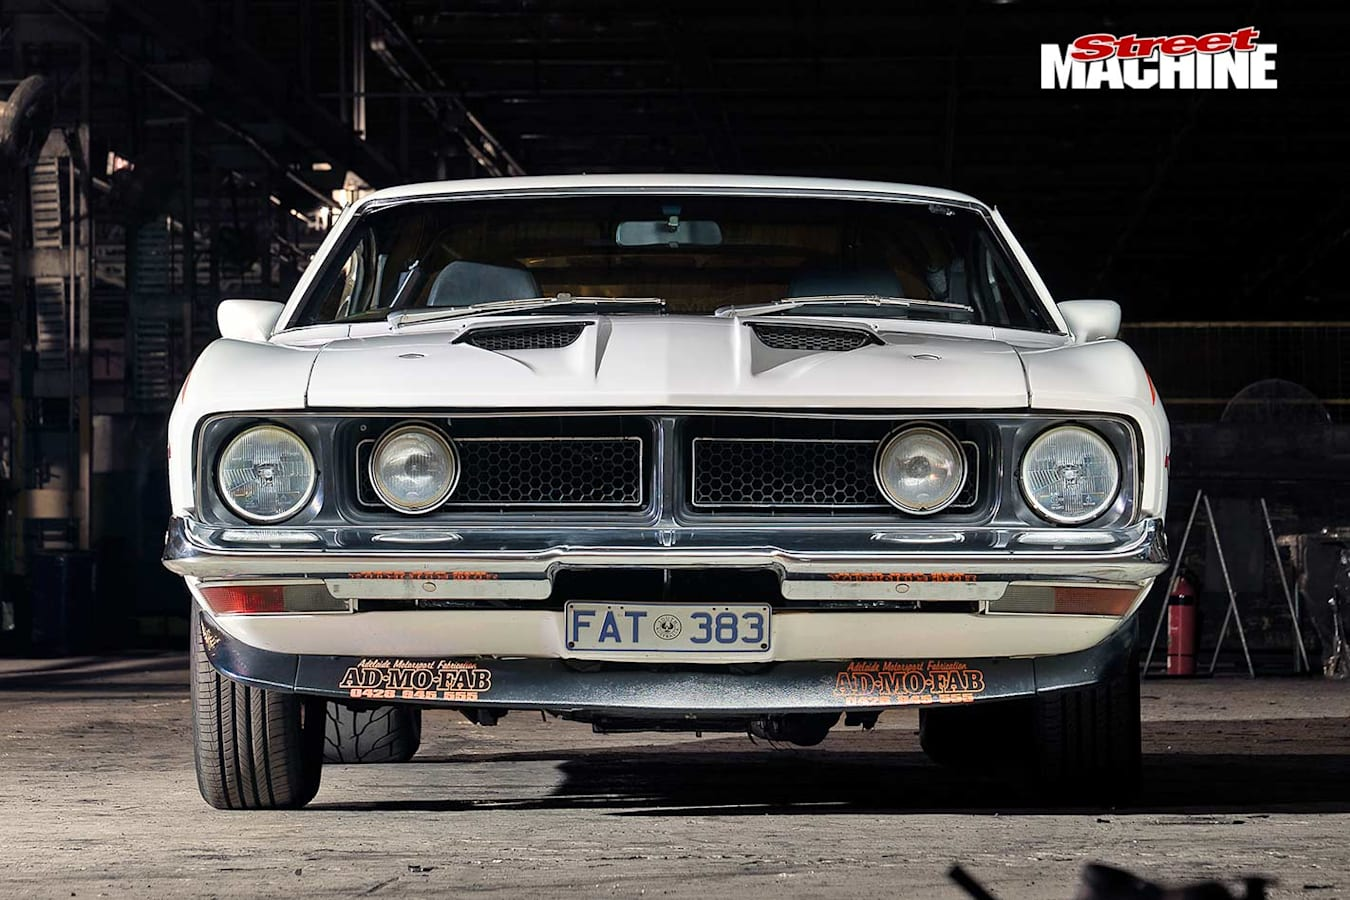 Ford Falcon front